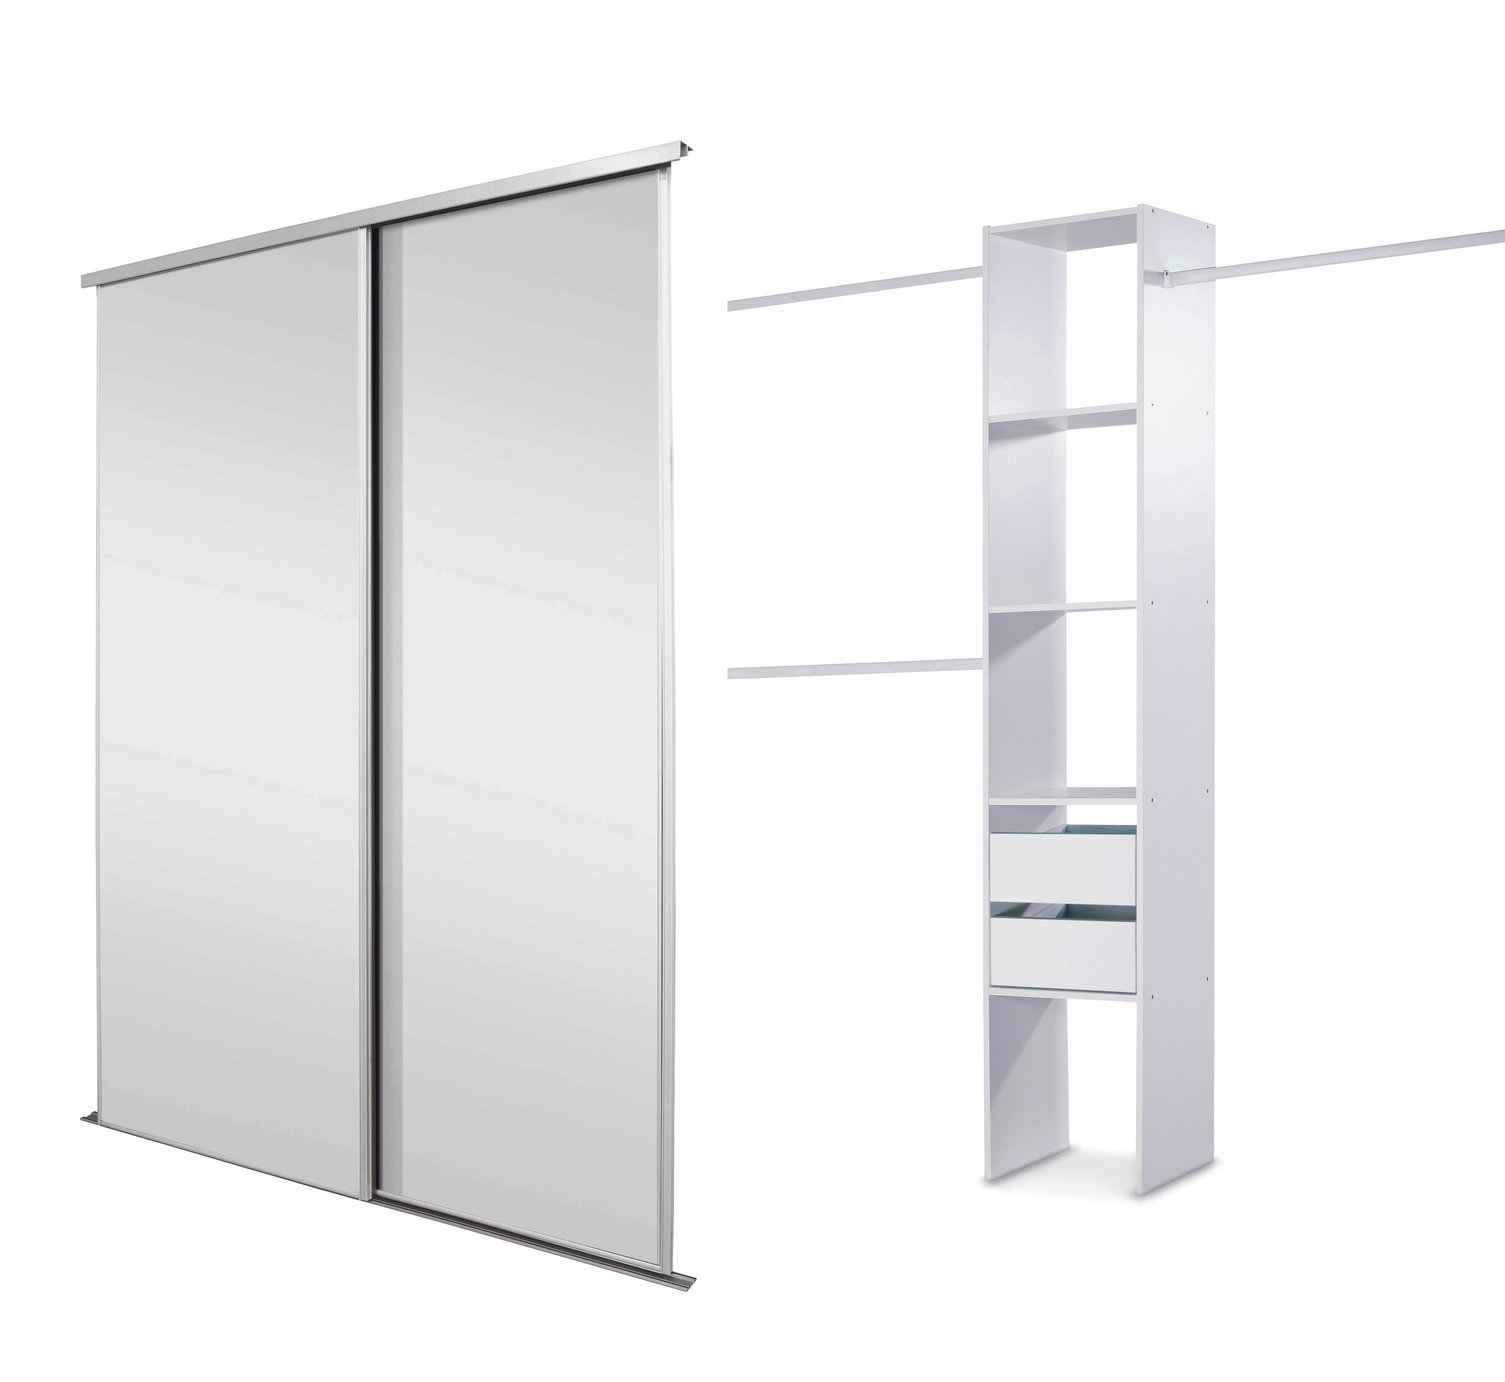 Wardrobe Kits Sale On Sliding Wardrobe Door Kit W1498mm White Frame